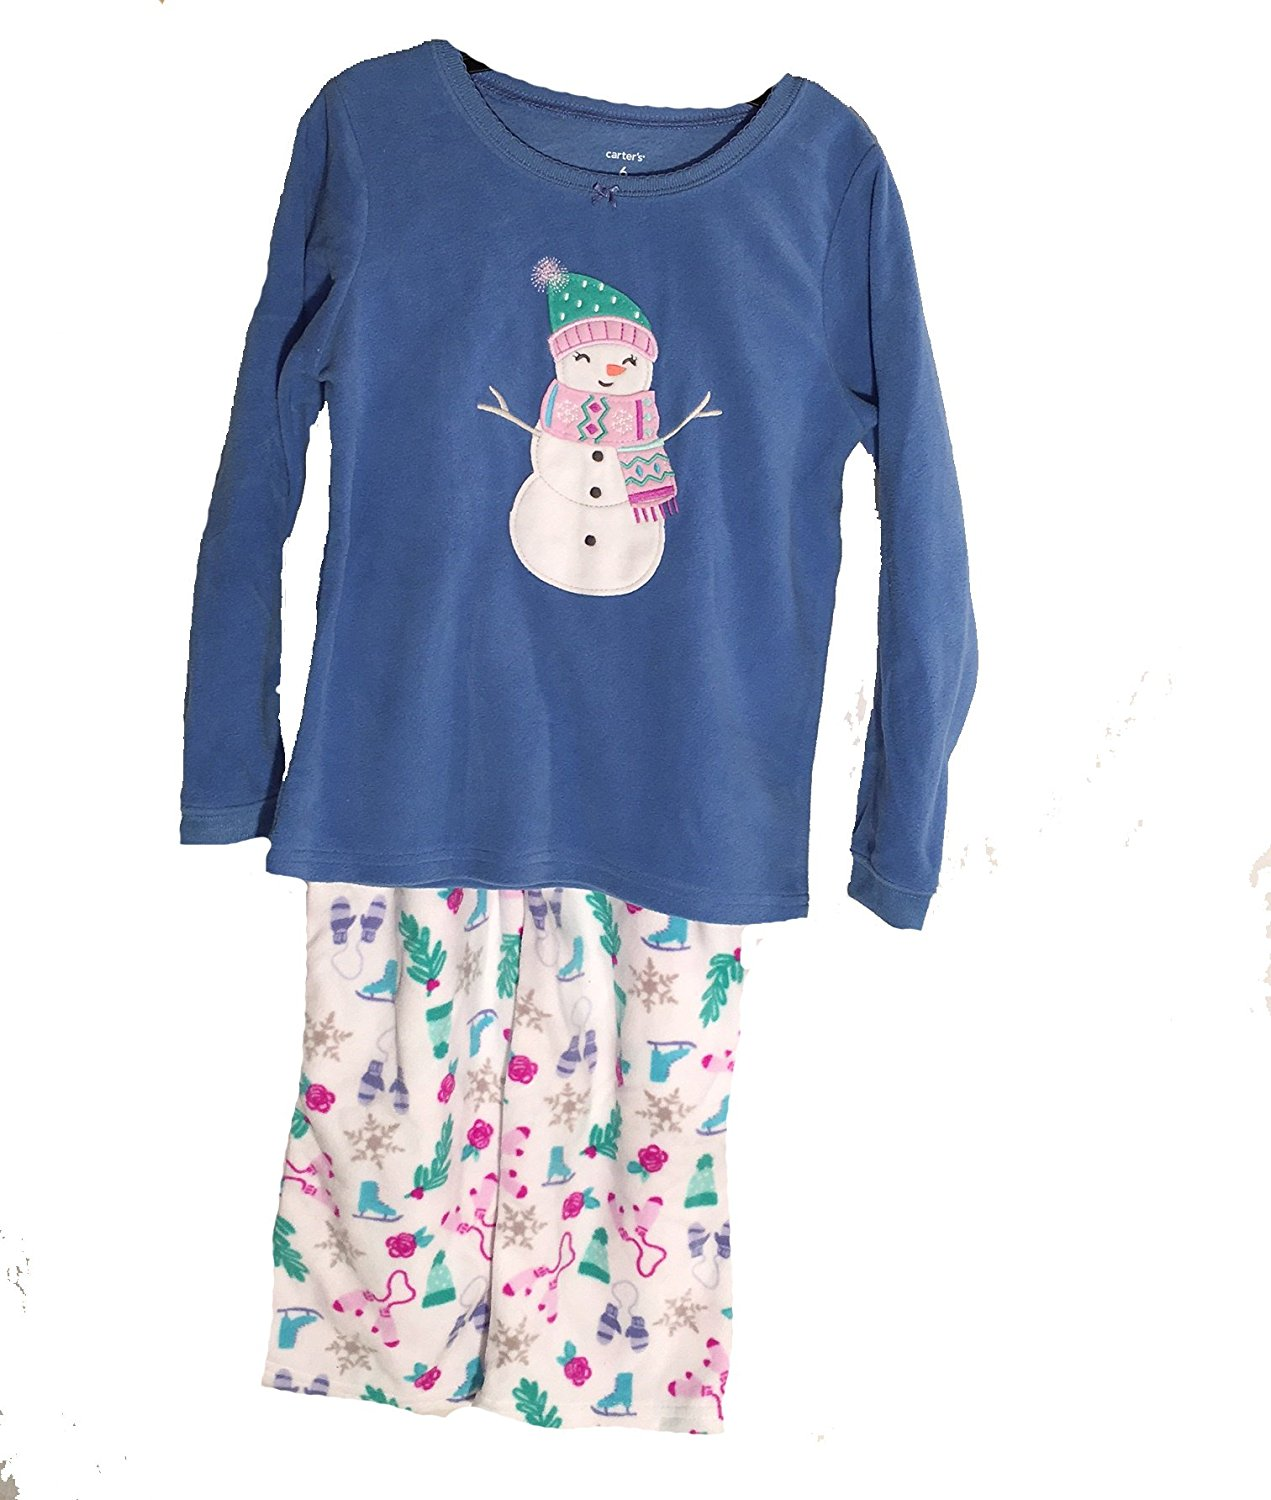 a34dae30d Get Quotations · Carters Girls 2 Piece Fleece Sleepwear Set, Snowman,Pink /Blue,6